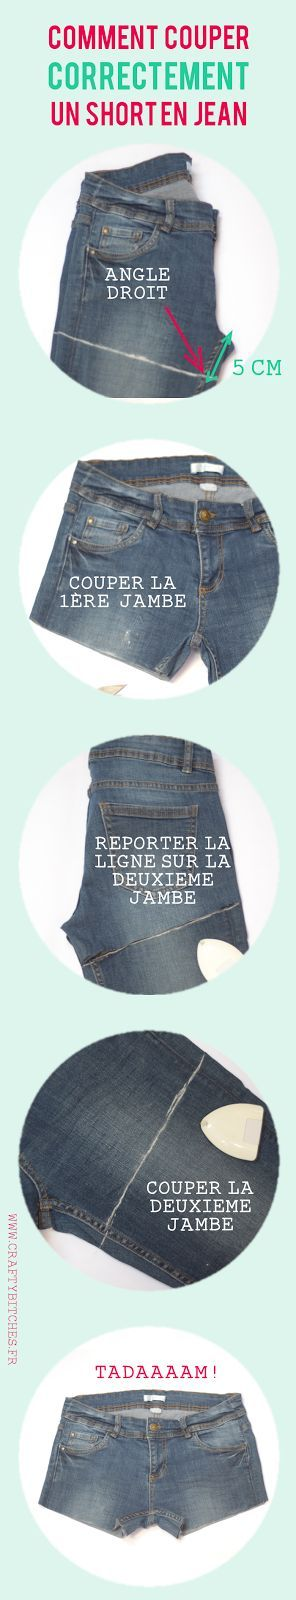 Crafty Bitches - Blog DIY, Couture, Déco, Vintage. Tuto couture, Do it yourself, décoration, rétro.: Comment couper un short en jean (sans faire de massacre)  ♥ #epinglercpartager